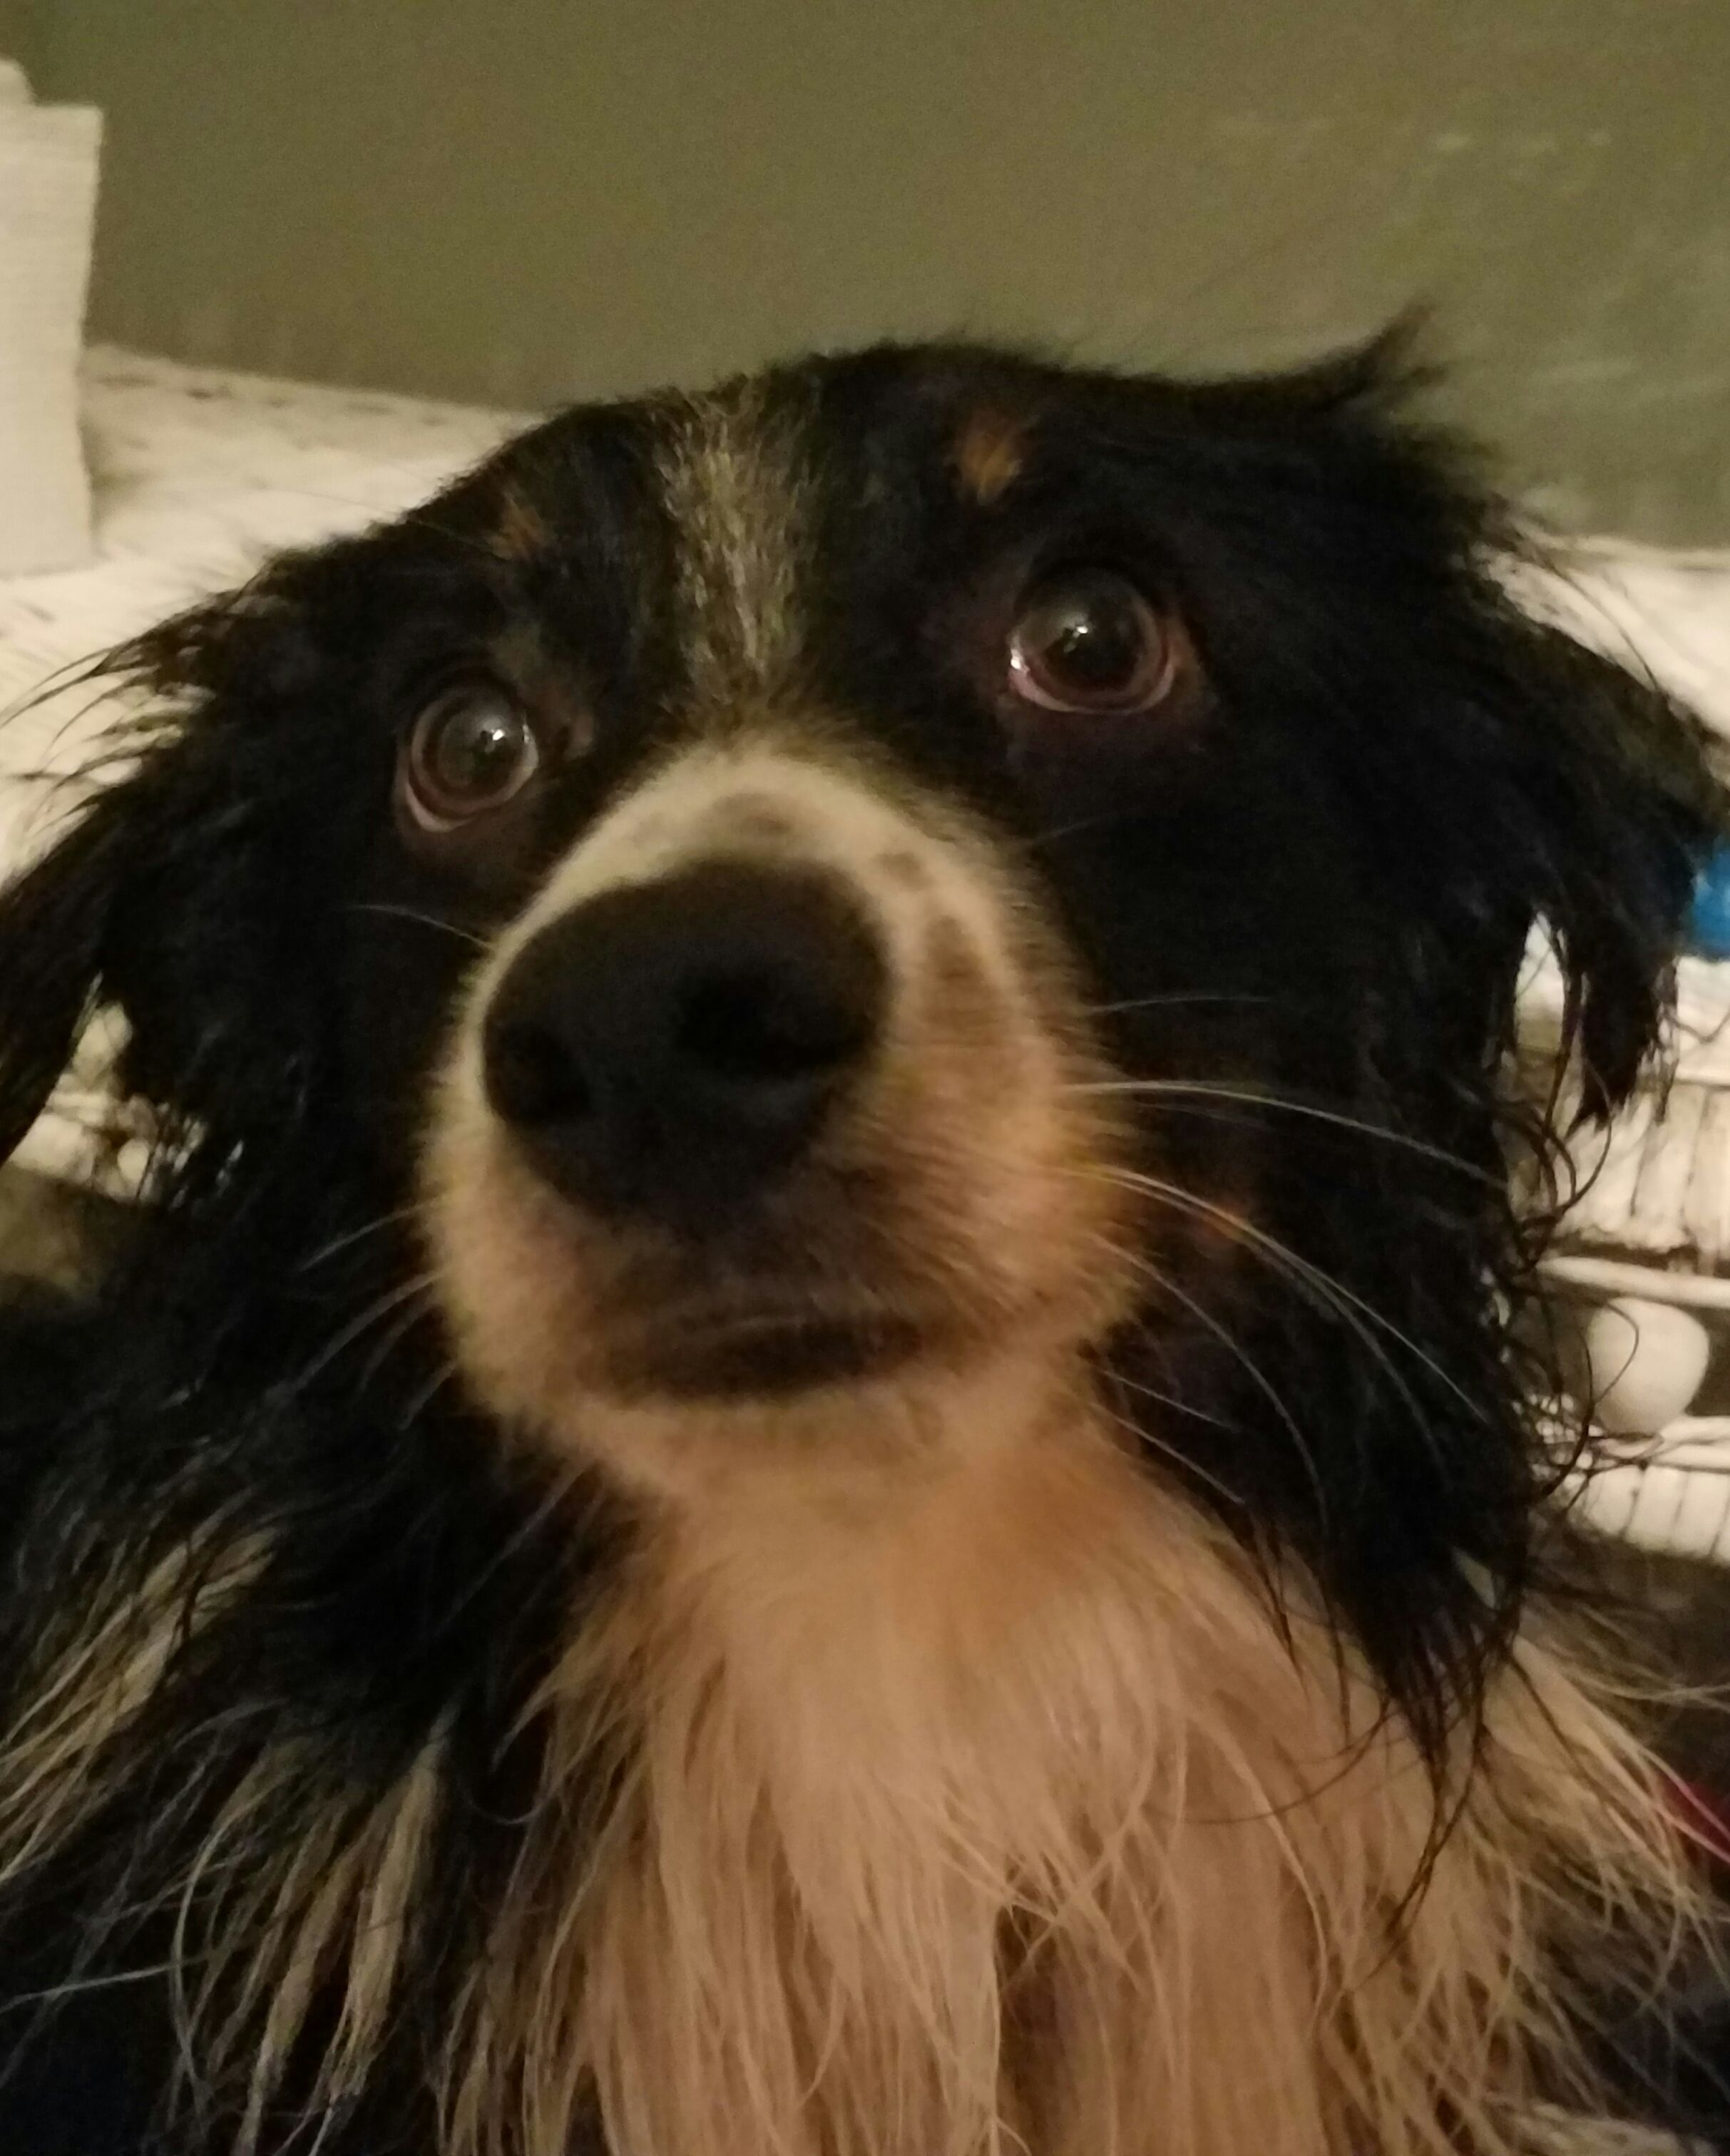 Australian Shepherd dog for Adoption in St. Louis Park, MN. ADN-510858 on PuppyFinder.com Gender: Male. Age: